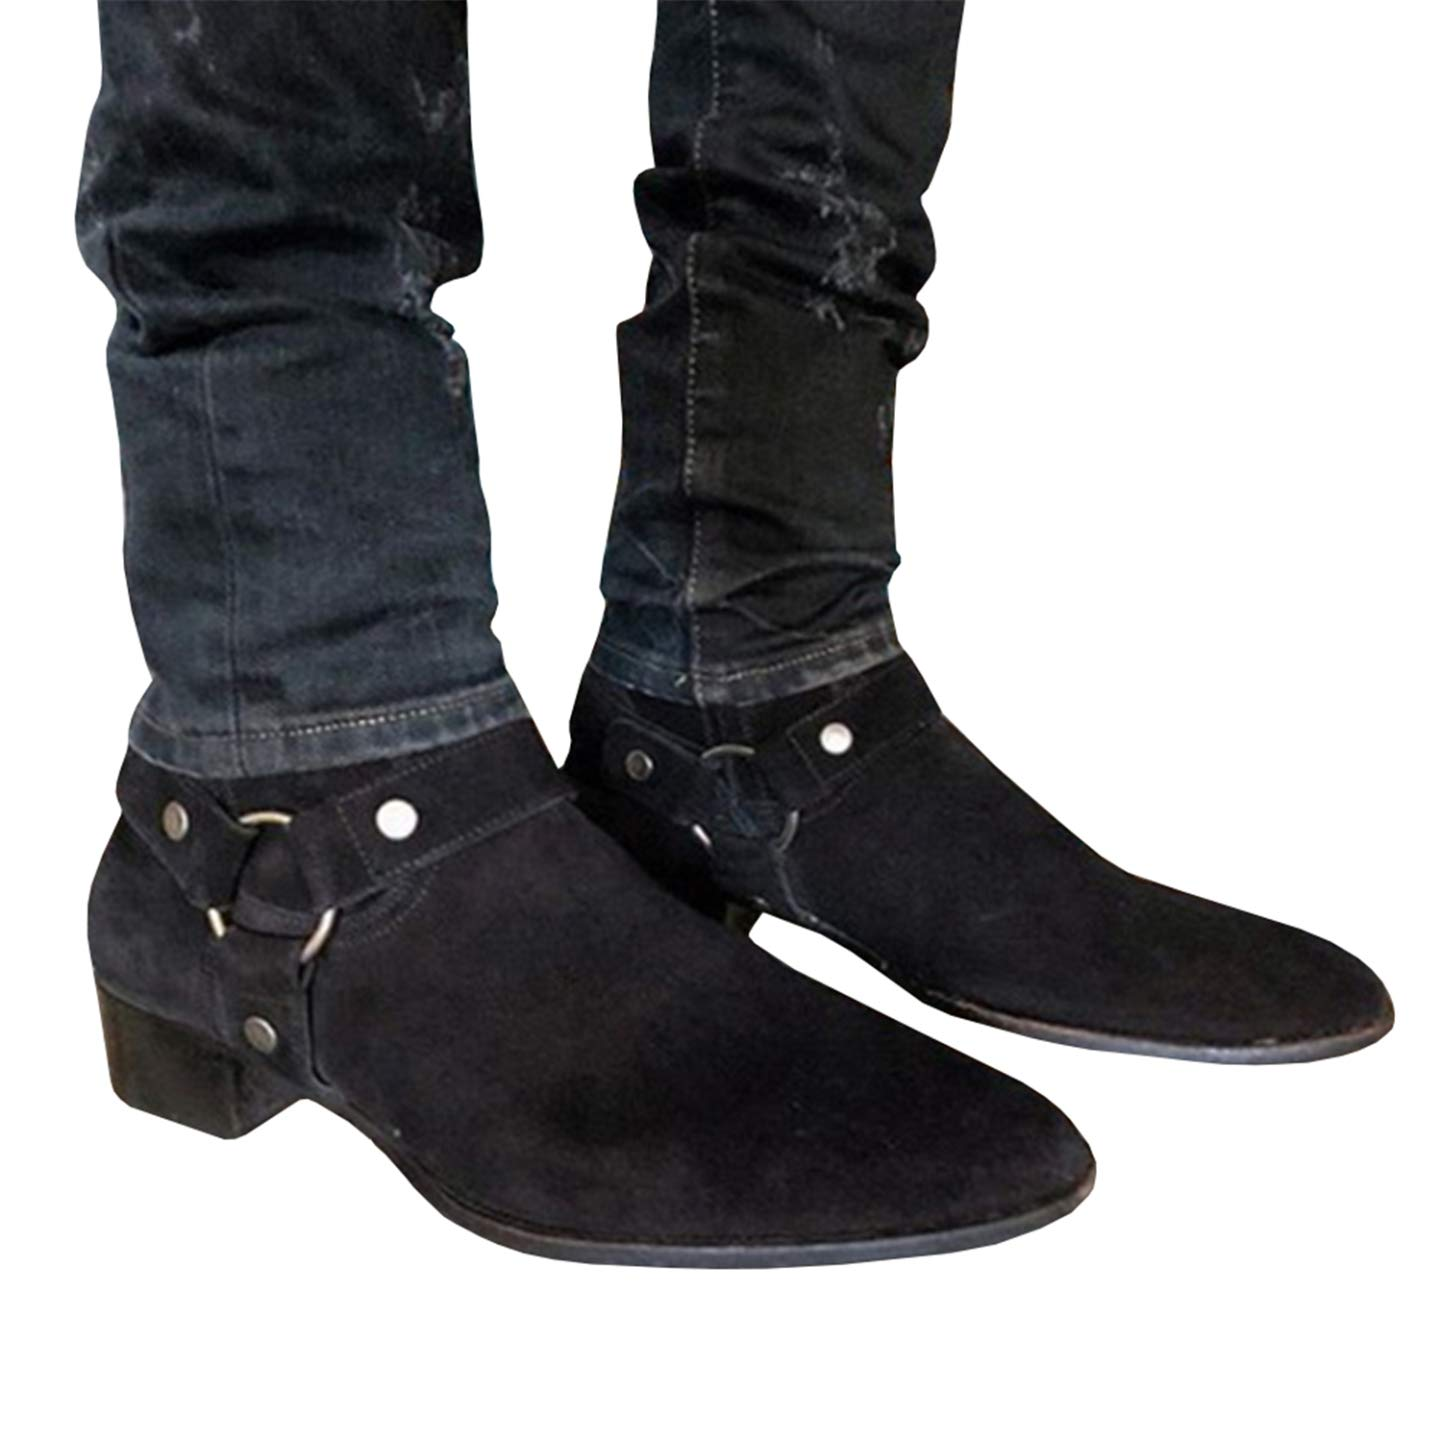 ed887b402f9 Amazon.com   Syktkmx Mens Harness Boots Mid Calf Ankle Strap Chunky ...